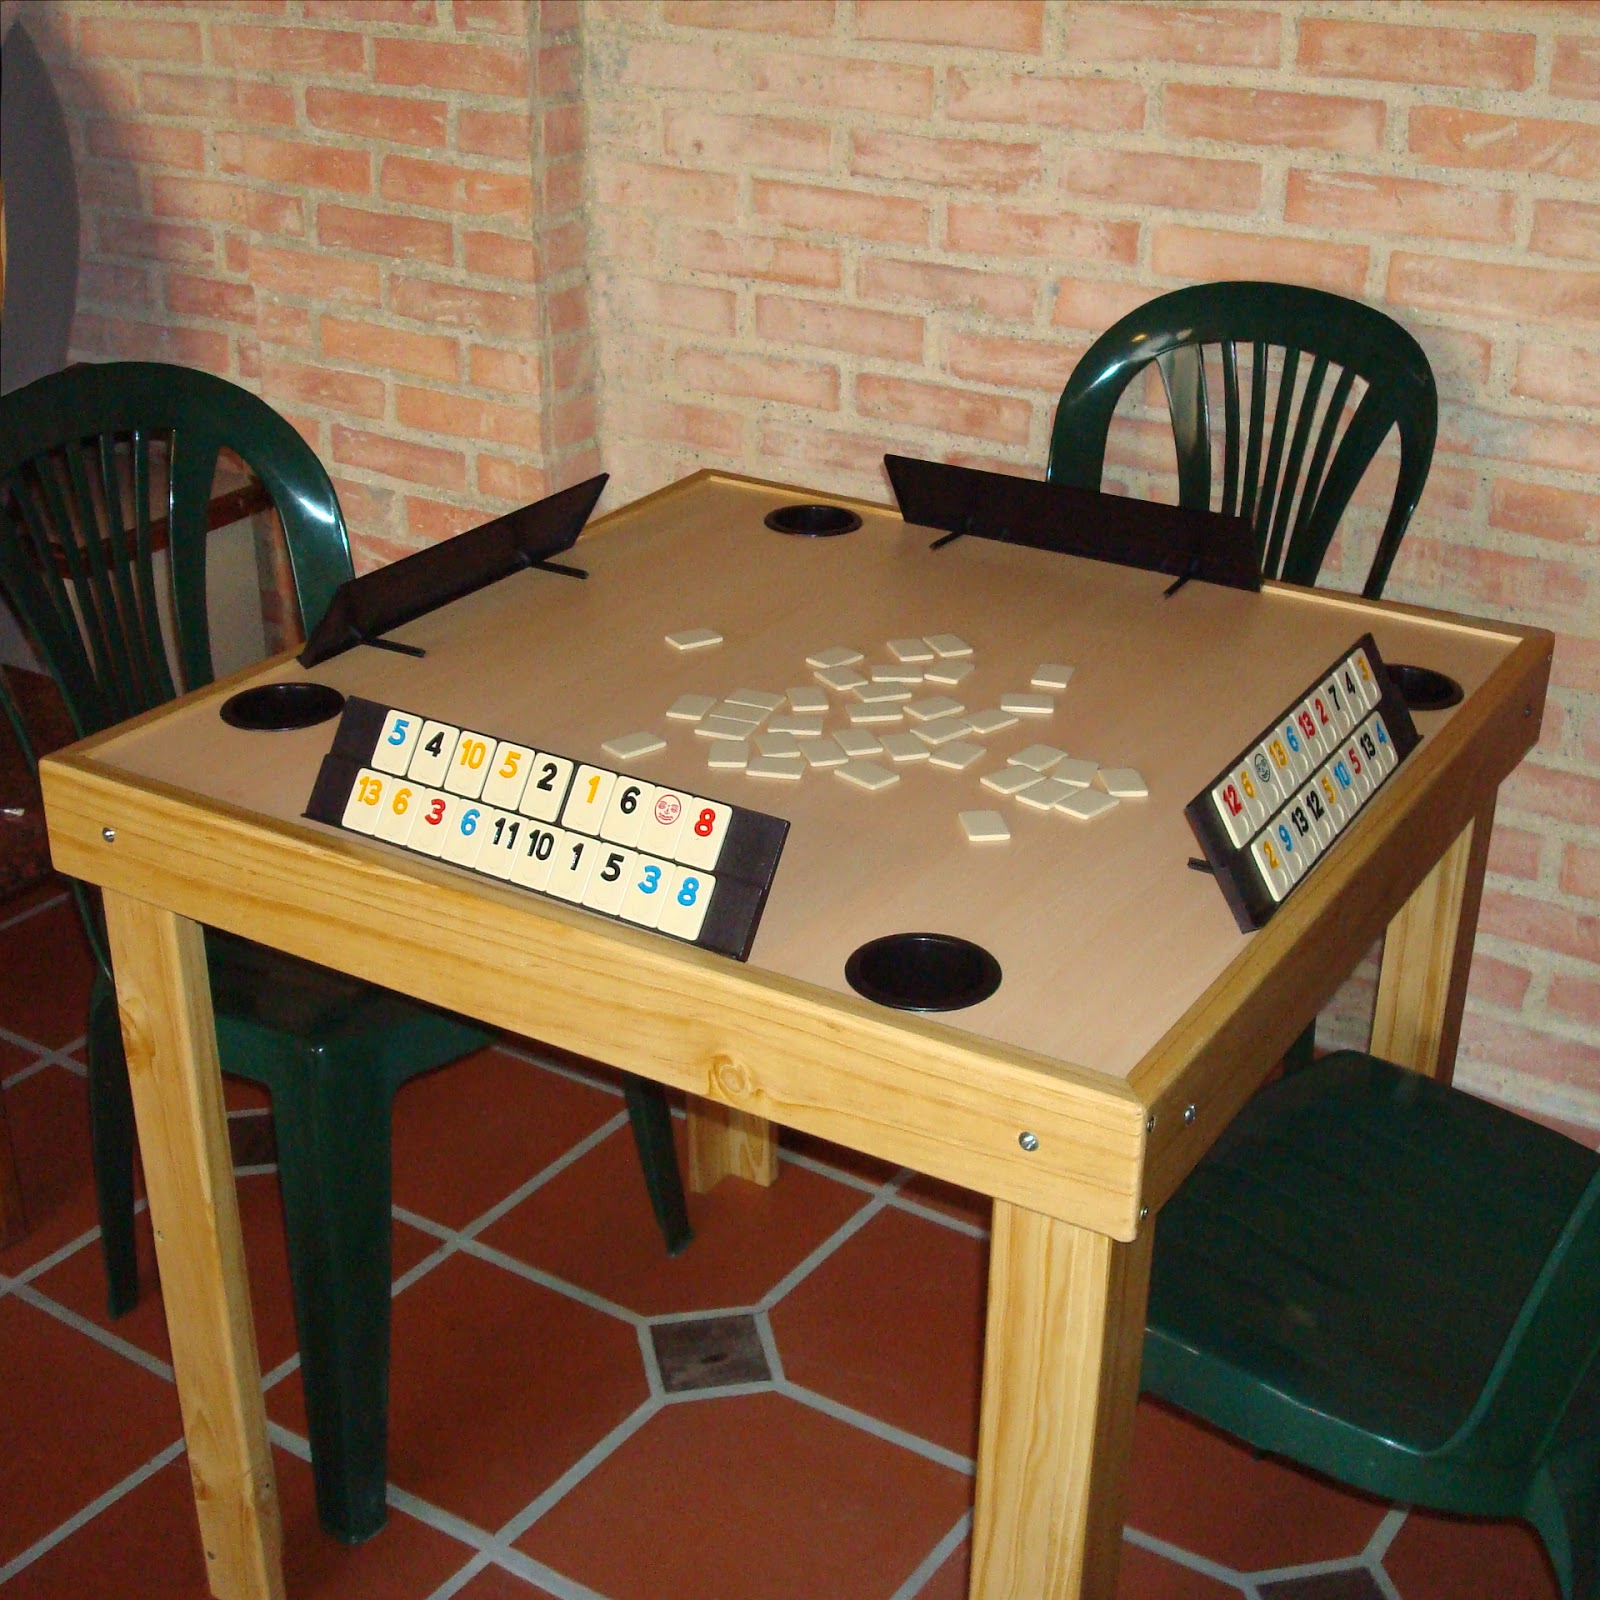 Mesas de Poker  Poker Tables Caracas  Blackjack  Ruleta  Roulette Mesas de Domin